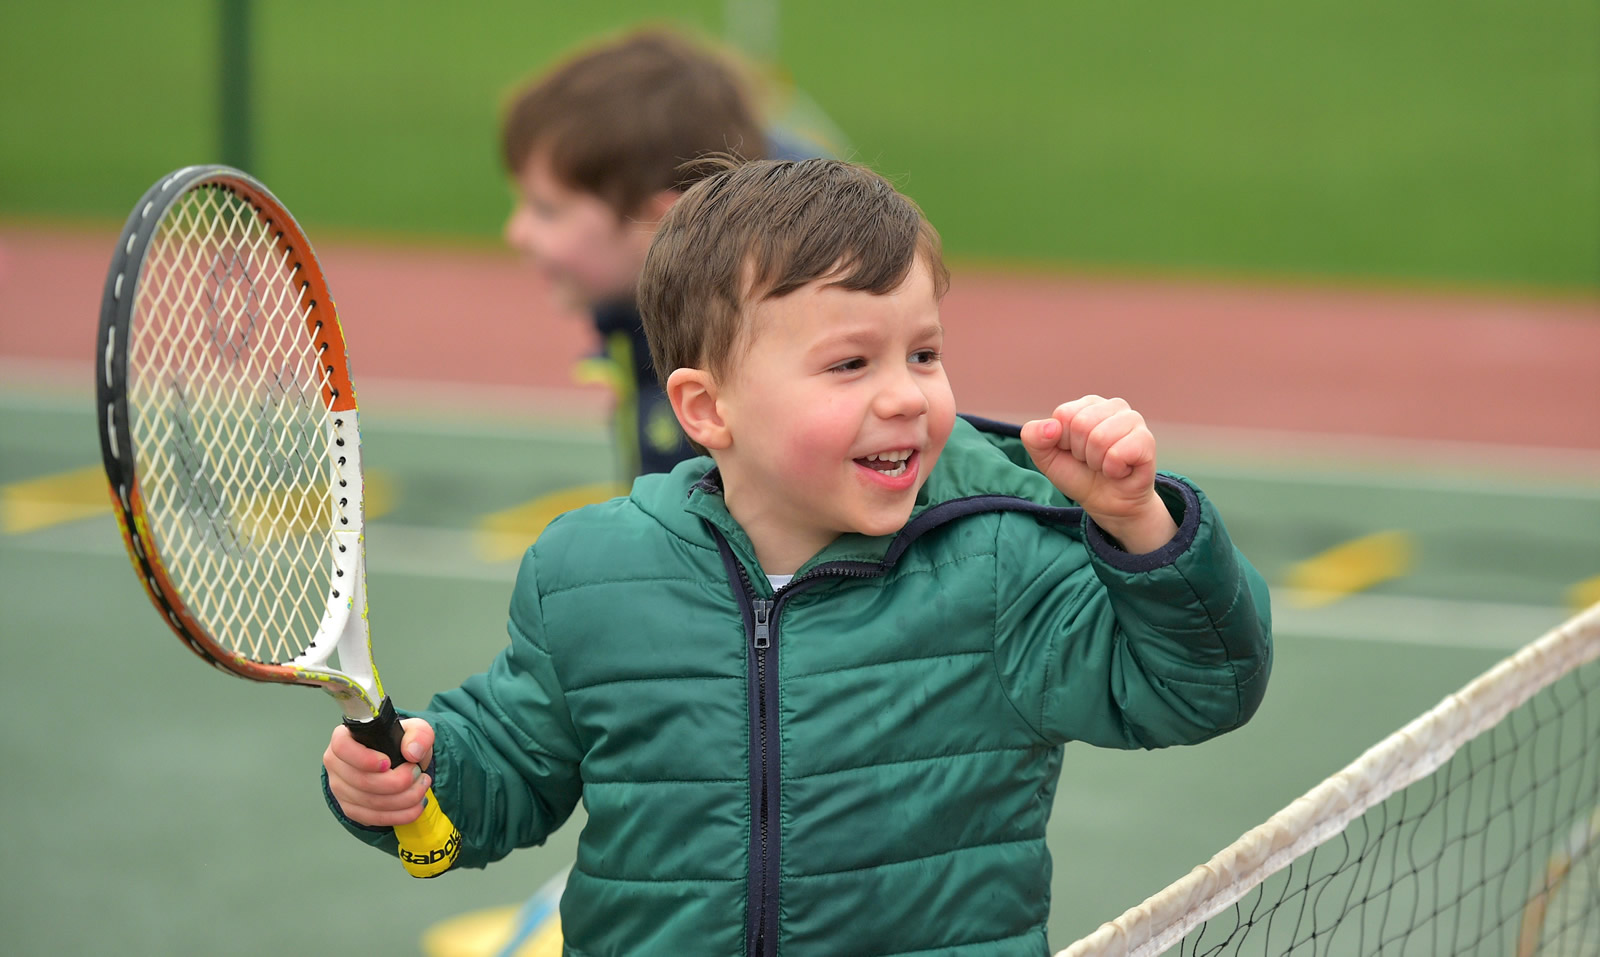 Mind Zone Childrens Sports Coaching - Education and Fun Tennis Lessons for Kids in Weybridge Cobham & Esher Surrey